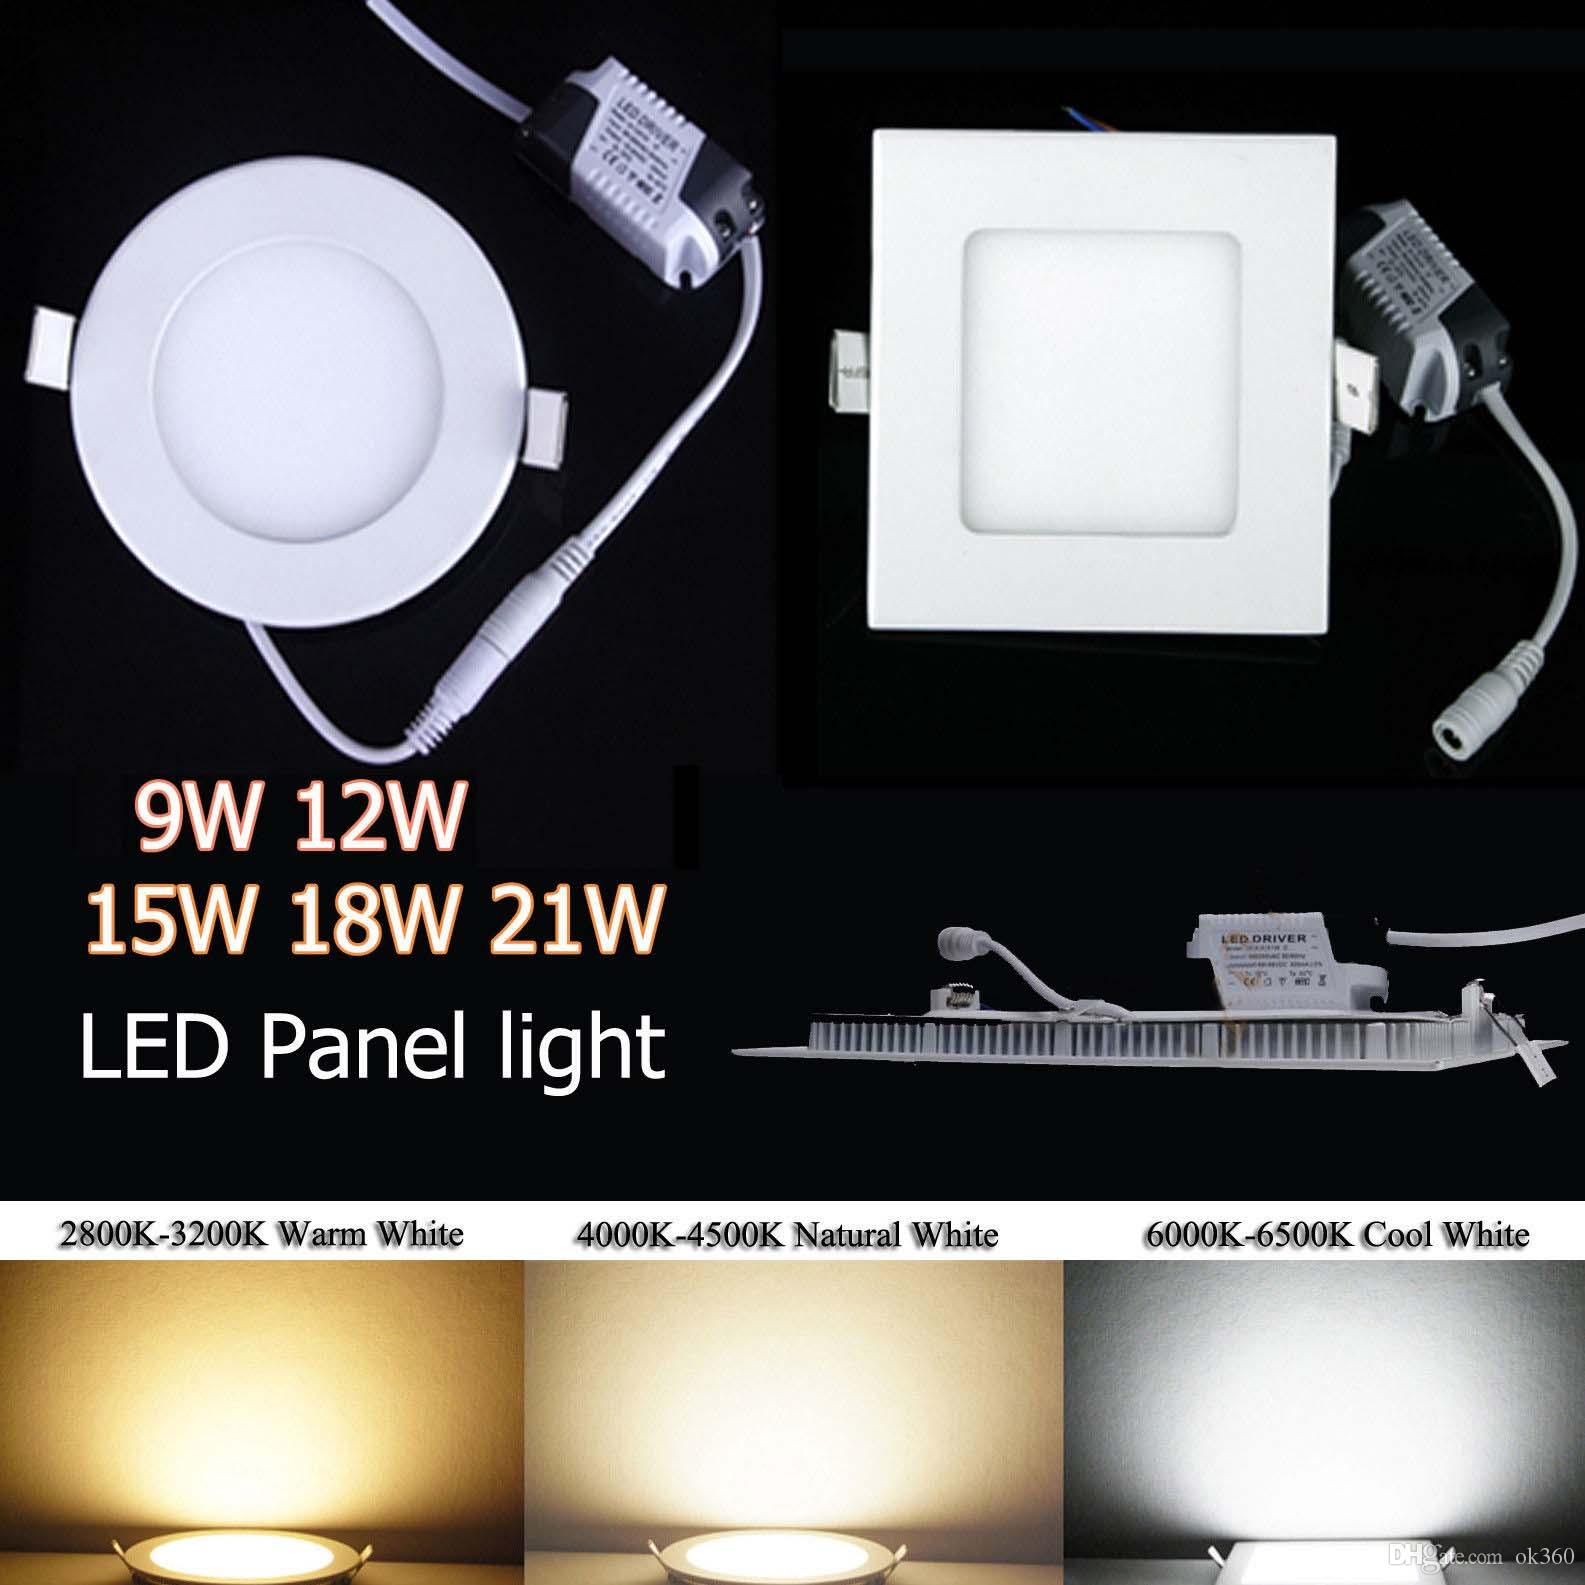 Super Mince Dimmable SMD2835 les Voyants de LED 9W 12W 15W 18W 21W Chaud/Nature/